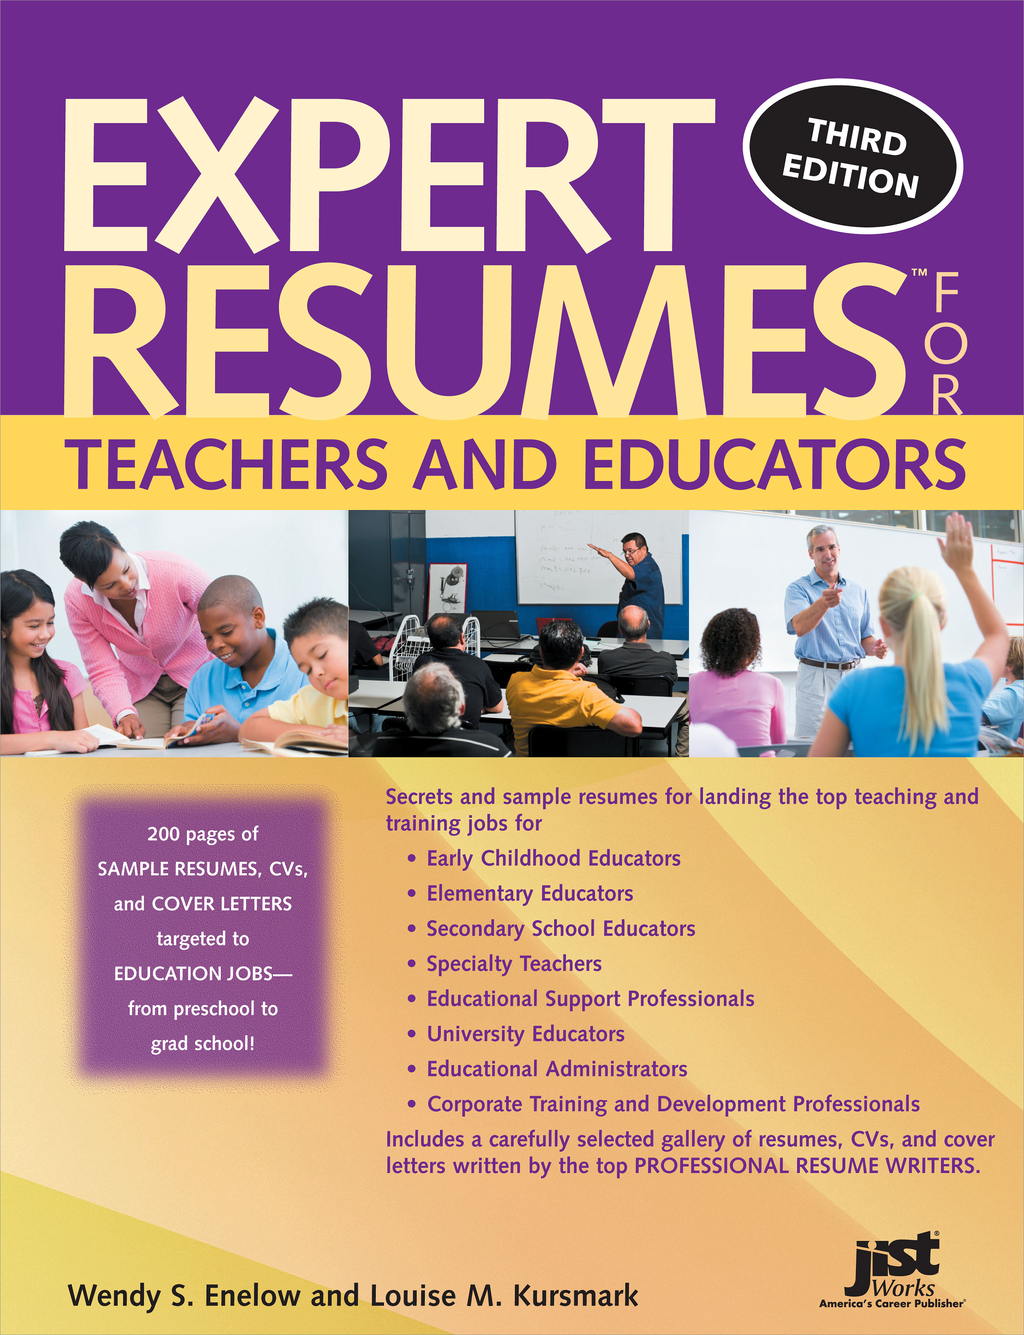 Expert Resumes for Teachers and Educators